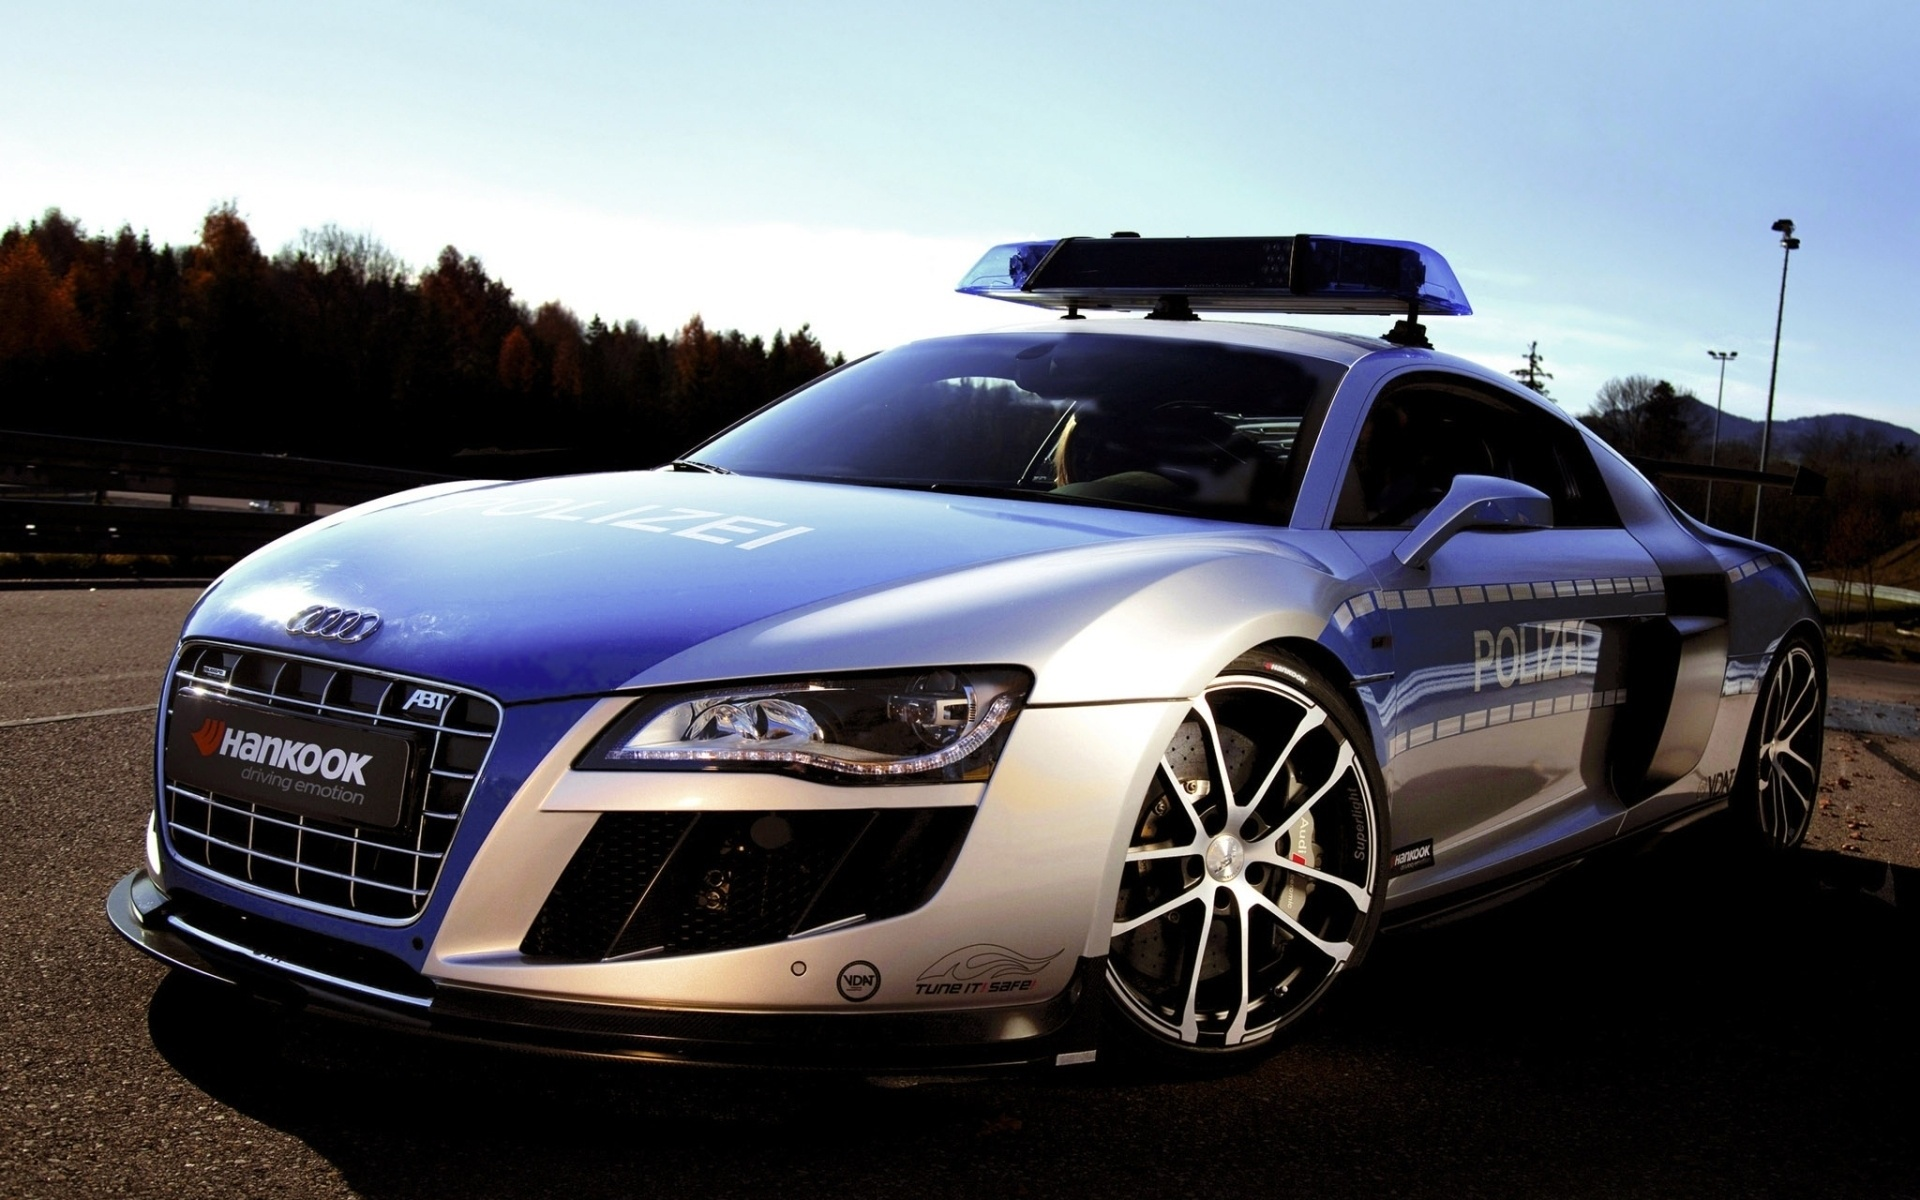 Cool Police Cars Wallpaper